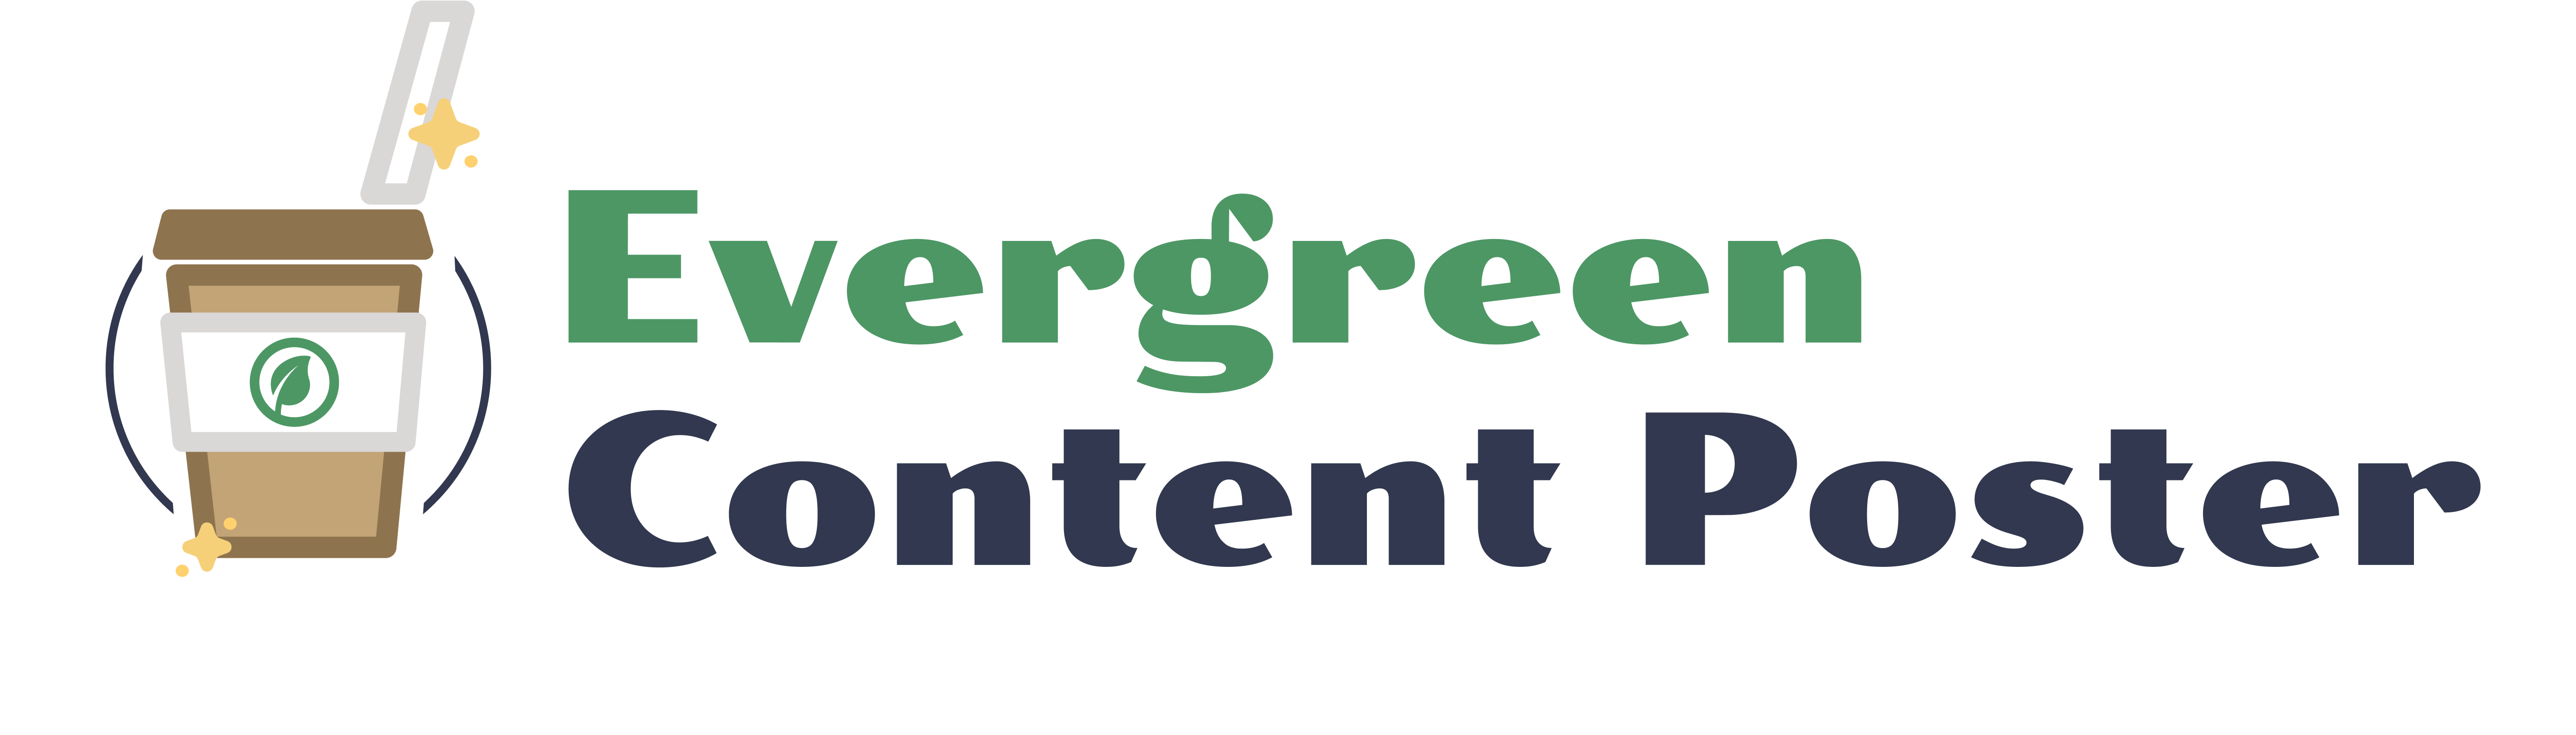 Evergreen Content Poster logo